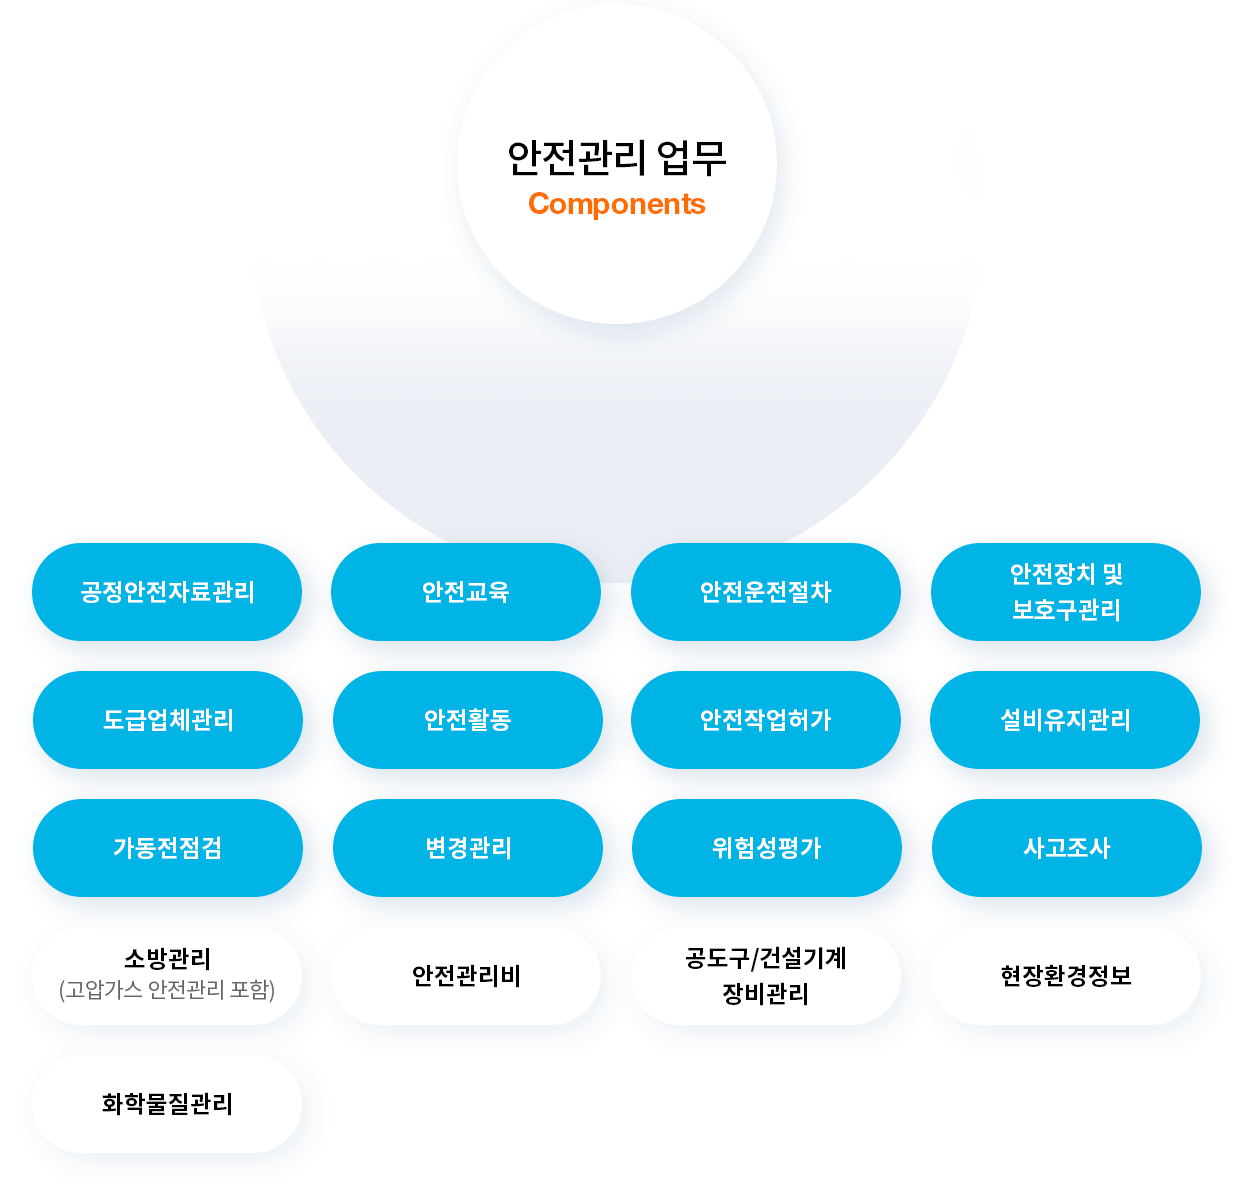 포스코ICT의 Smart Safety는 산업안전보건법에 맞는 서비스를 제공합니다 / Smart Safety, the integrated safety management solution of PoscoICT provides services that comply with Industrial Safety and Health Acts